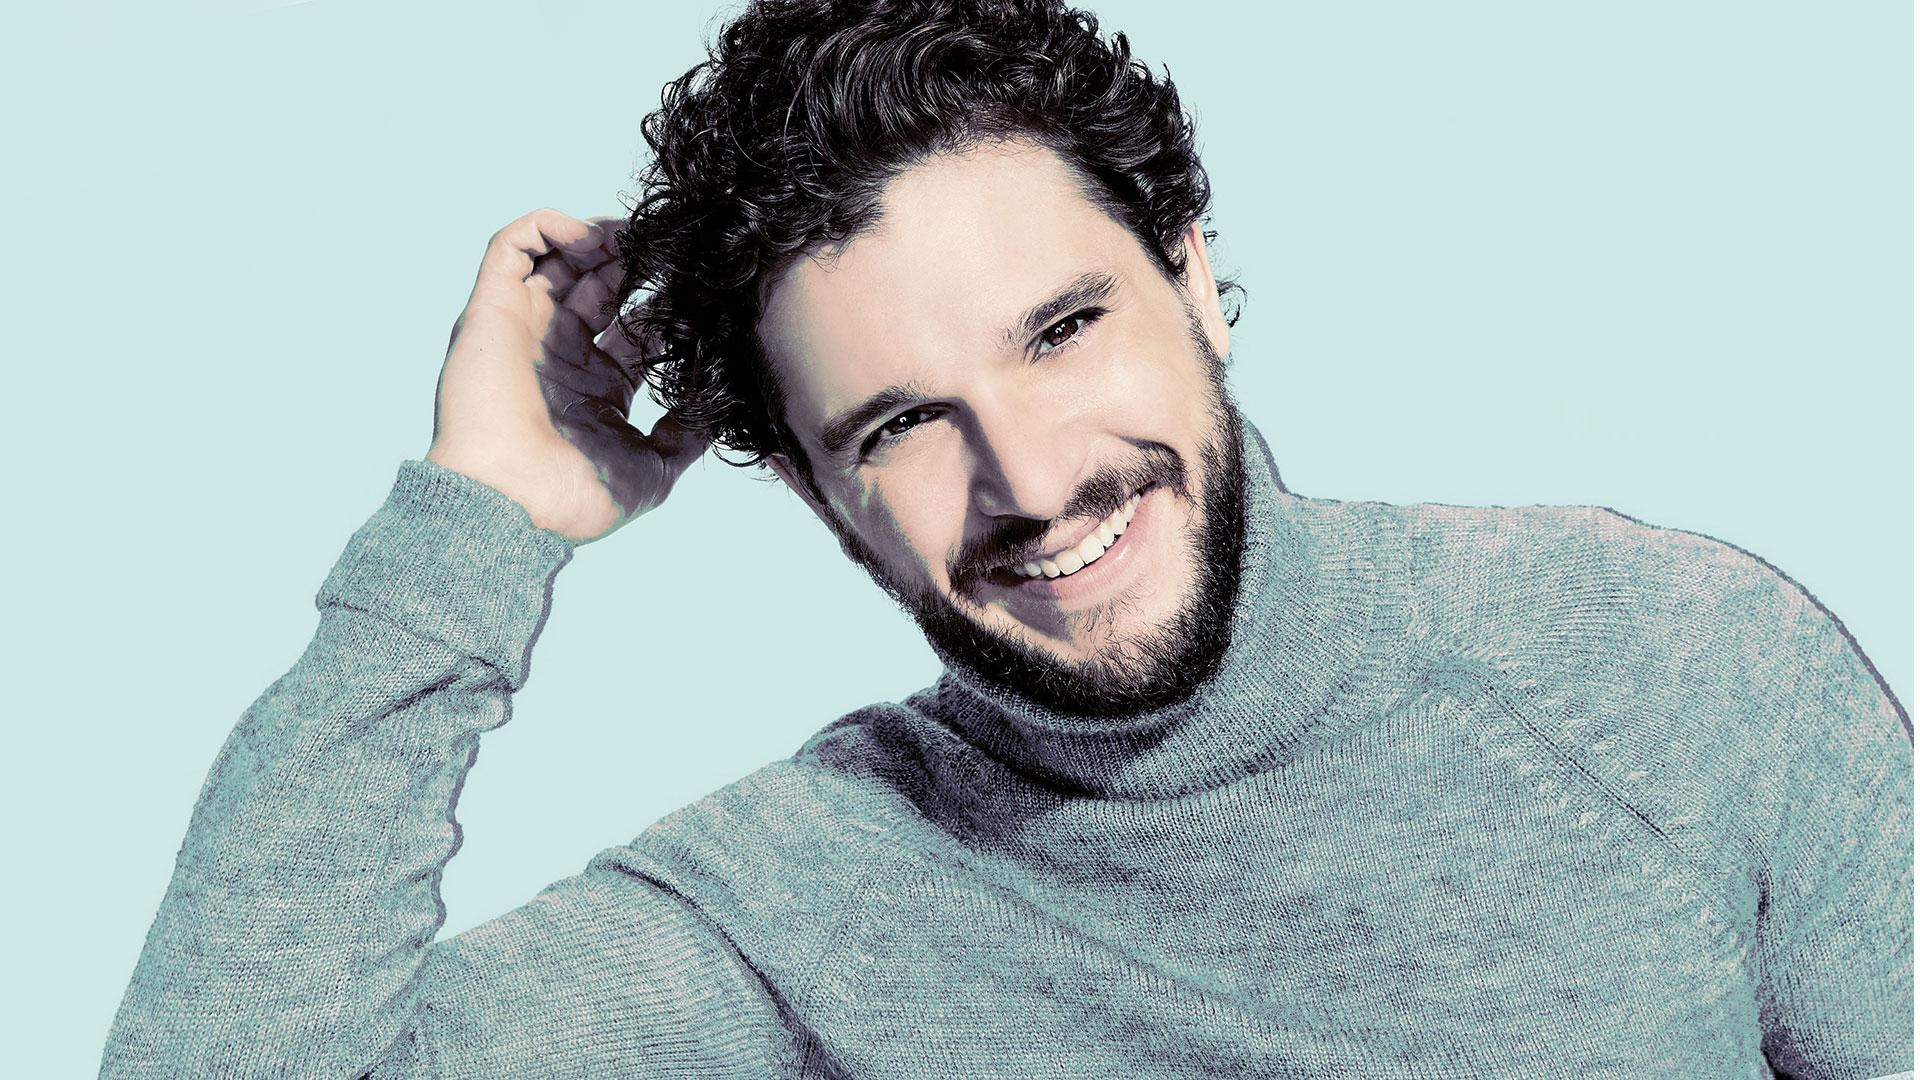 Kit Harington: April 6, 2019